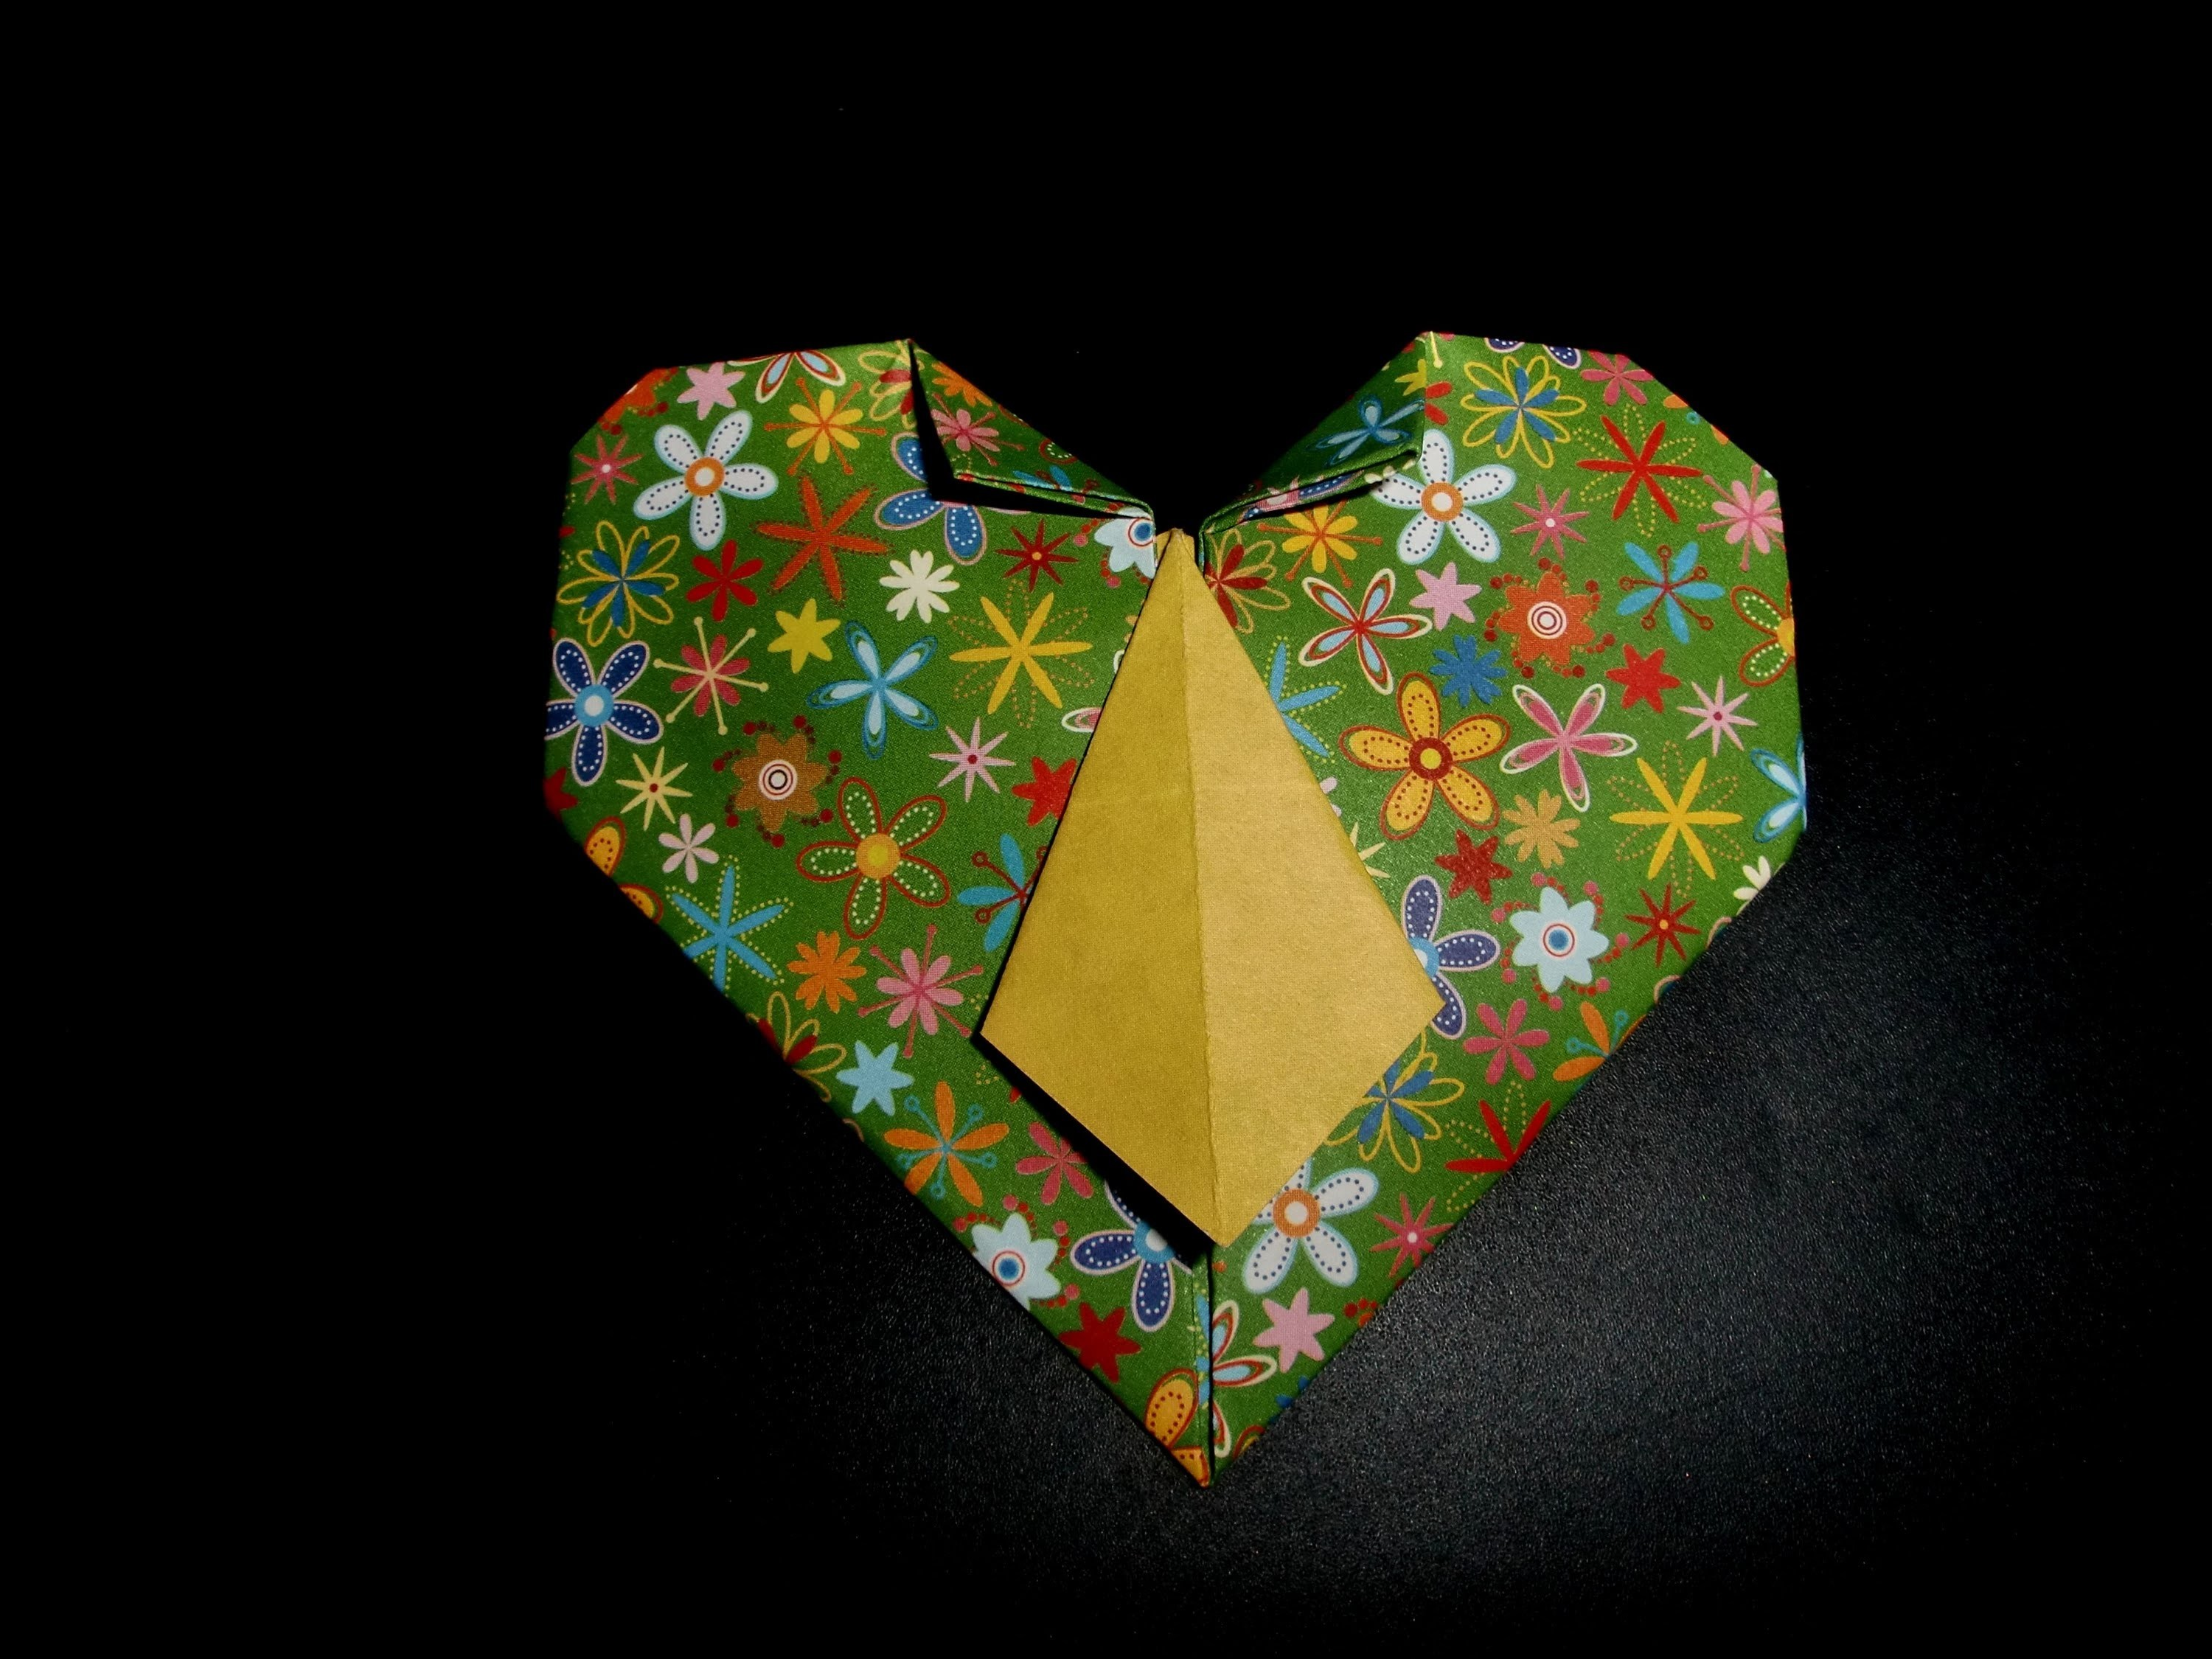 Origami Krawatte im Herz: Tie with Hearth - Tutorial [HD]